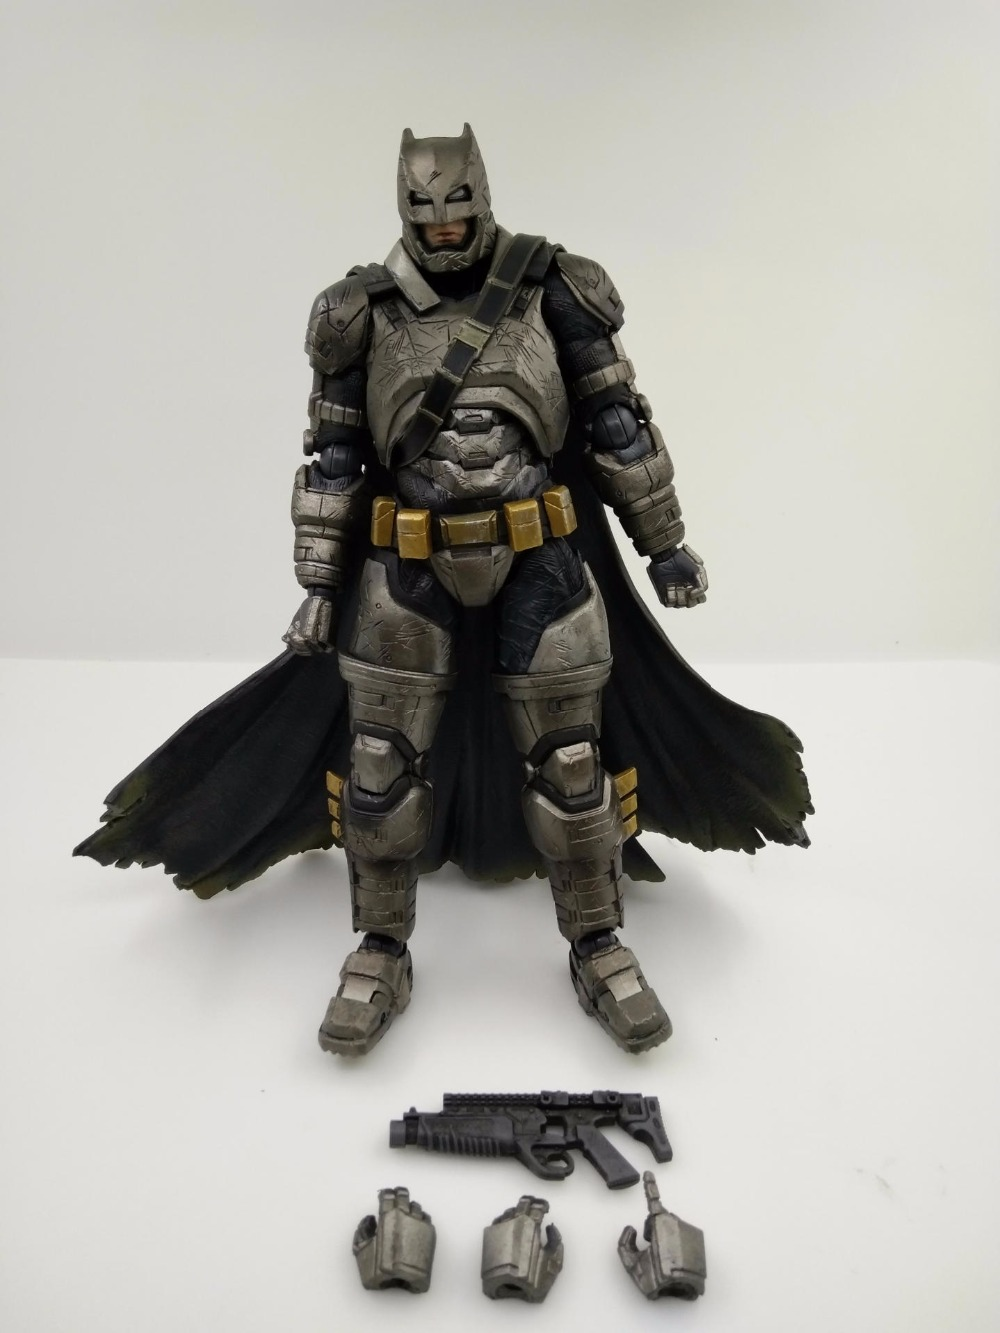 Dawn of Justice Play Arts Kai Batman Figure Armor PVC Action Figure Toys 27CM Movie Model Heavily-armored Bat Man Playarts Kai free shipping 10 pa kai batman v superman dawn of justice super man boxed 25cm pvc action figure collection model doll toy gift